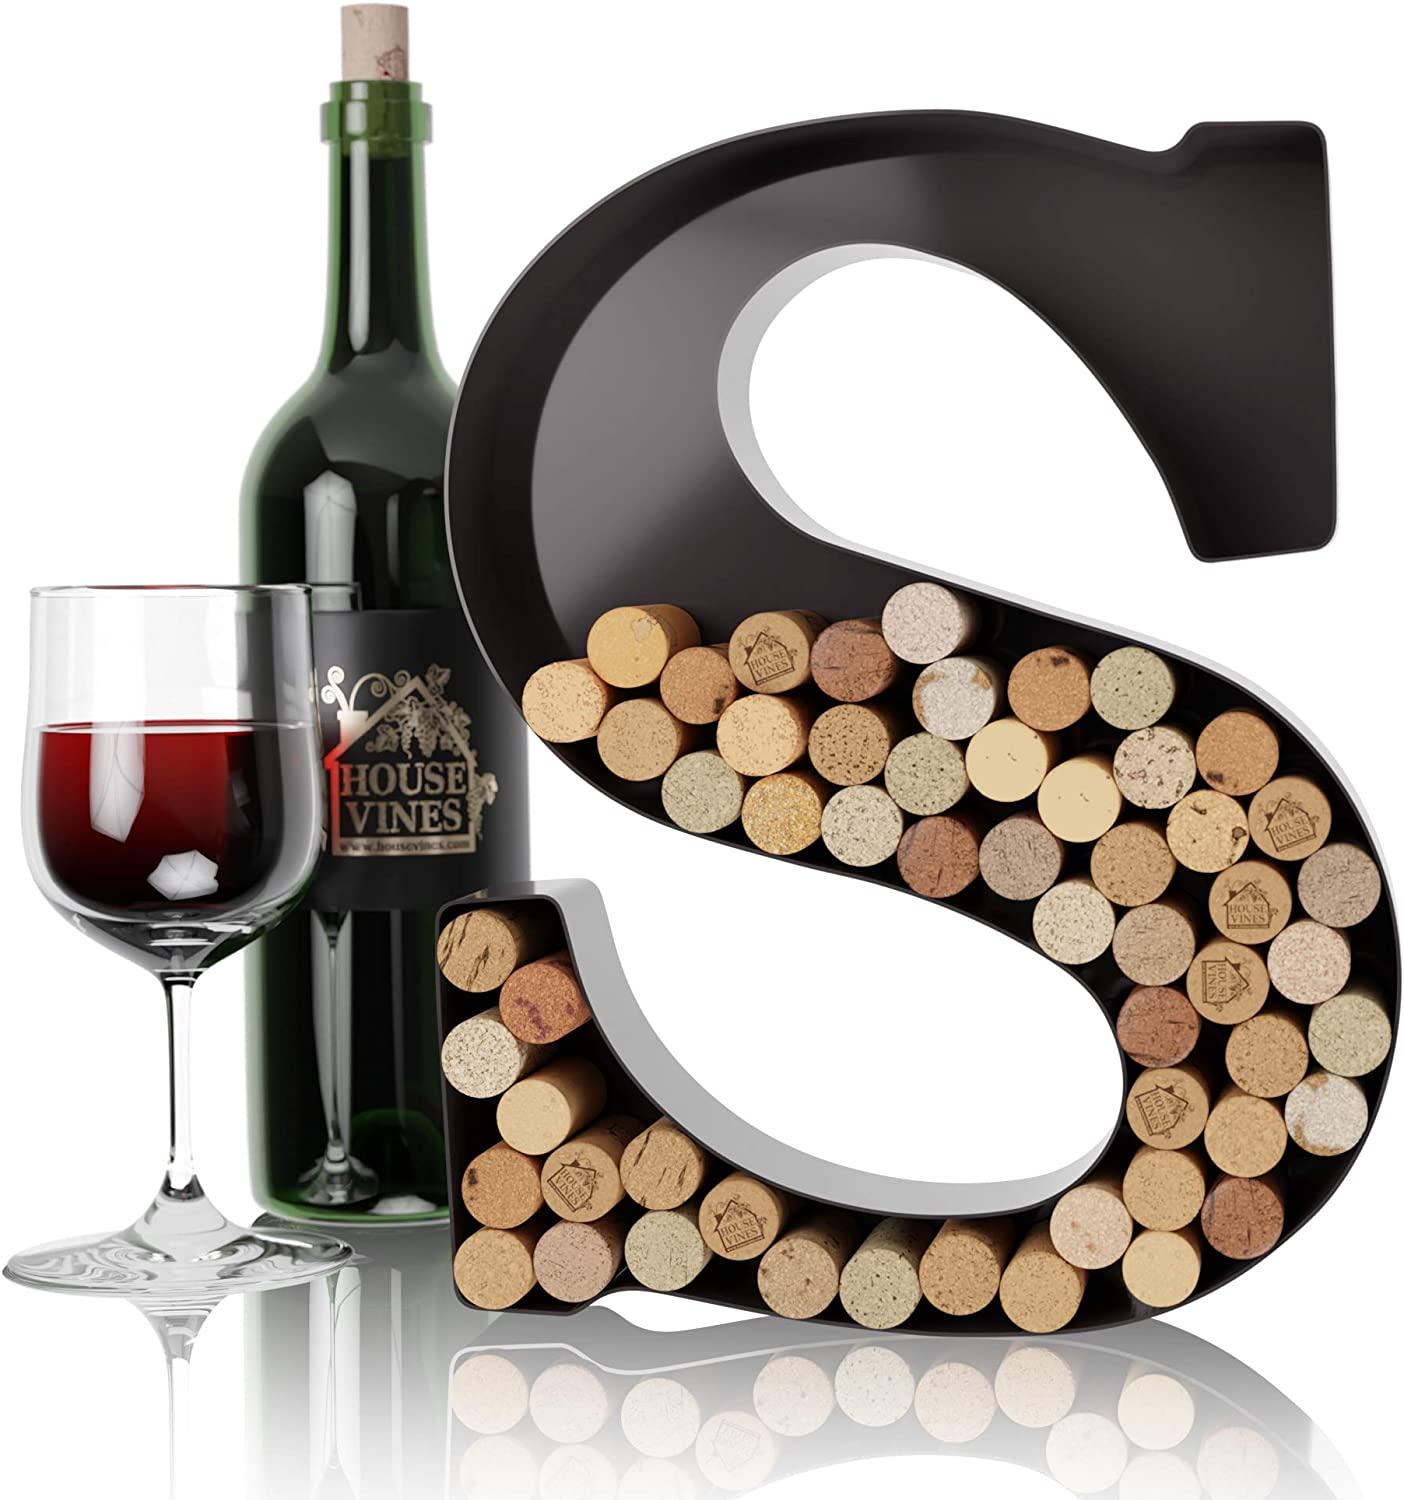 Wine Letter Cork Holder Art Wall Décor ~ Metal Letter Wine Cork Holder Monogram ~ Individual Wine Letter Cork Holders A Thru Z ~ Gifts for Wine Lovers ~ by HouseVines (S)